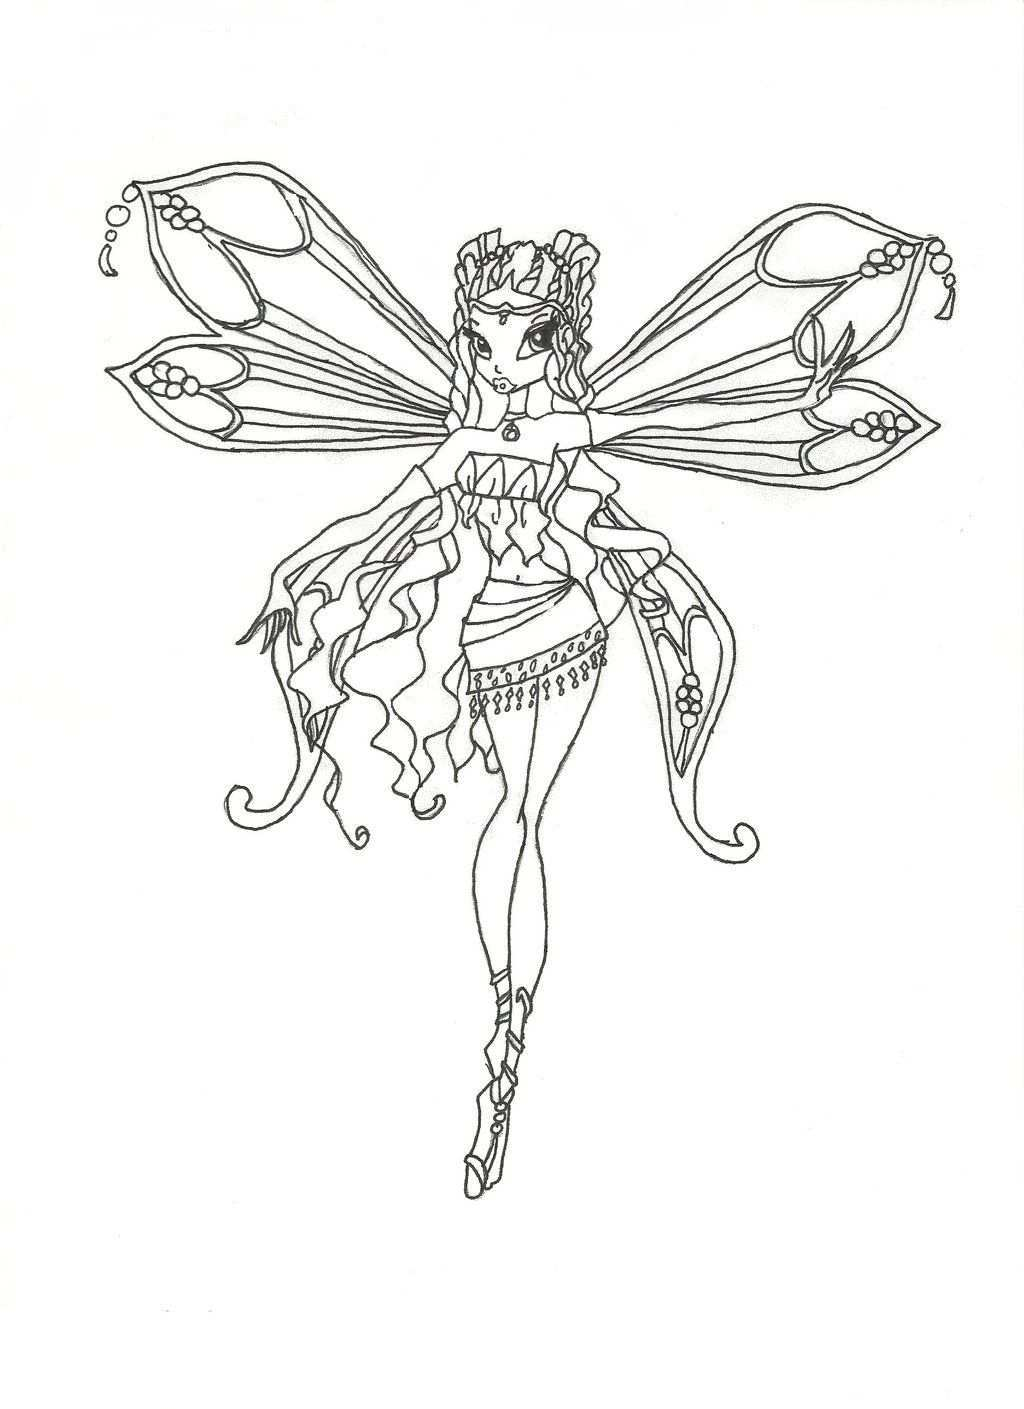 Winx Club Enchantix Layla Coloring Page By Winxmagic237 Deviantart Com On Deviantart Coloring Pages Fairy Coloring Pages Winx Club